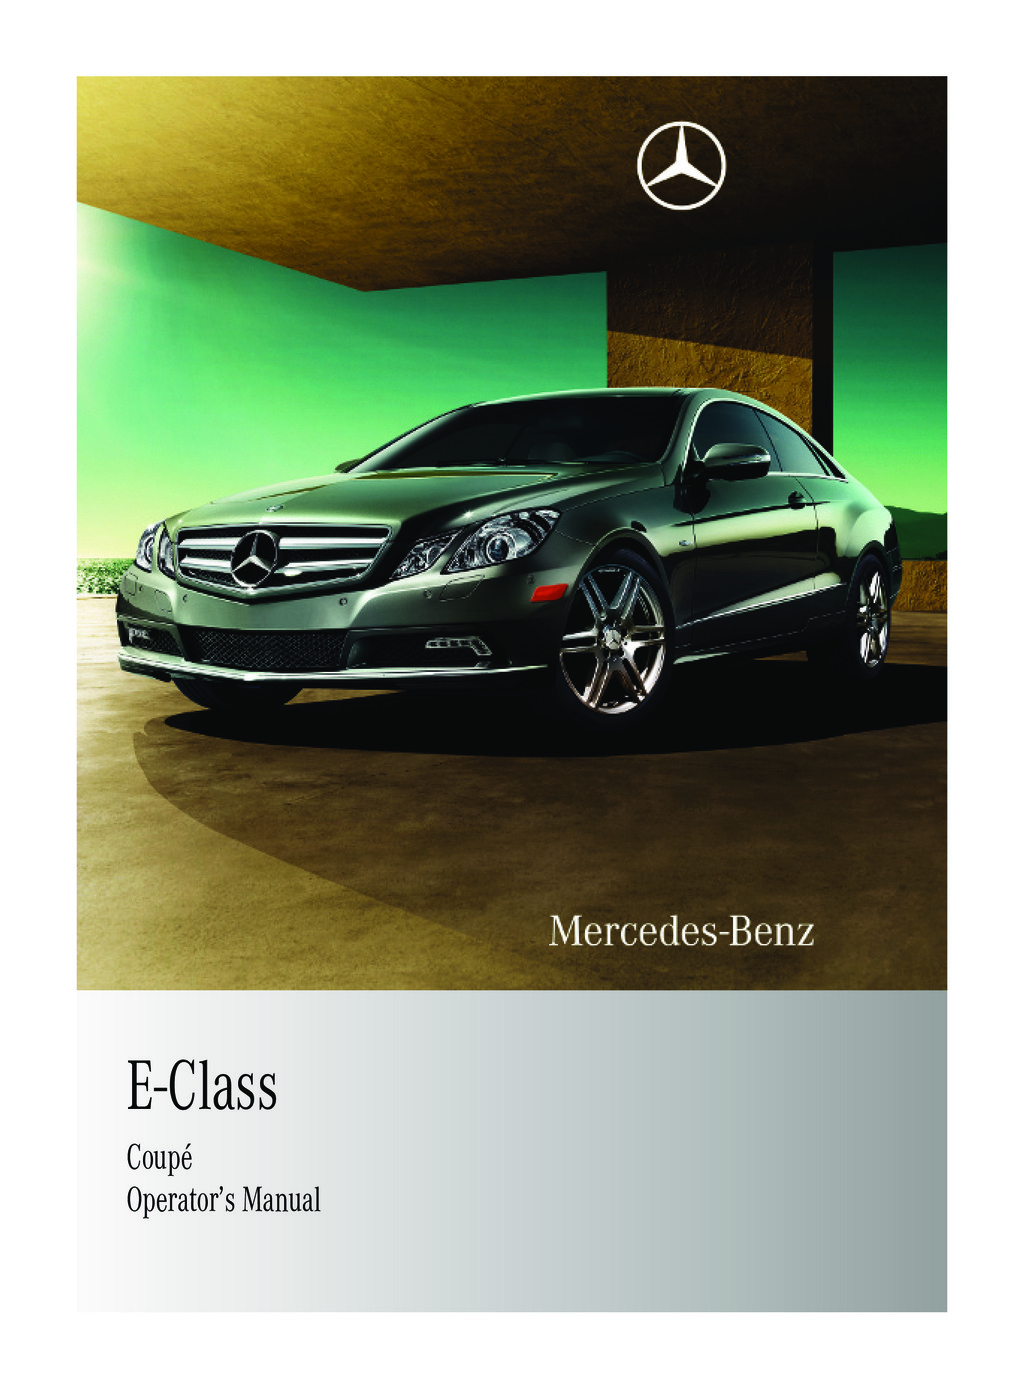 2010 Mercedes-Benz E Class Coupe owners manual